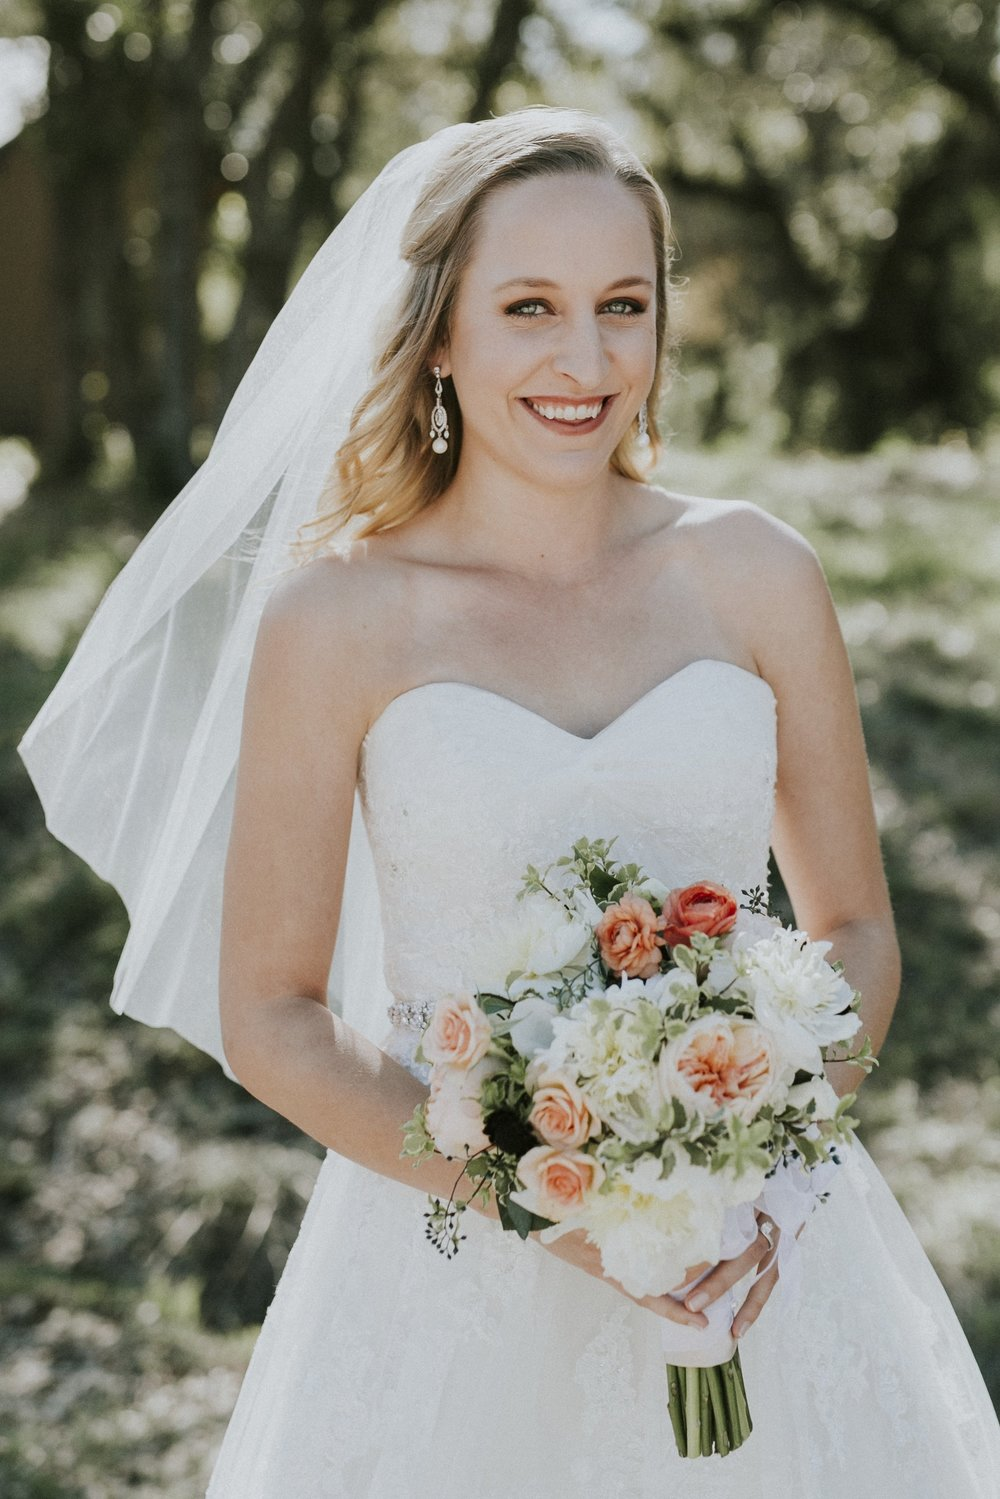 hey there! - I'm Katie Sinclair! I have a passion for painting florals and helping brides-to-be navigate the wedding planning process. I was a bride in 2016 and discovered my love of bouquet painting later that year when I spontaneously decided to paint my own florals (someone has to fill those empty apartment walls, am I right?!).